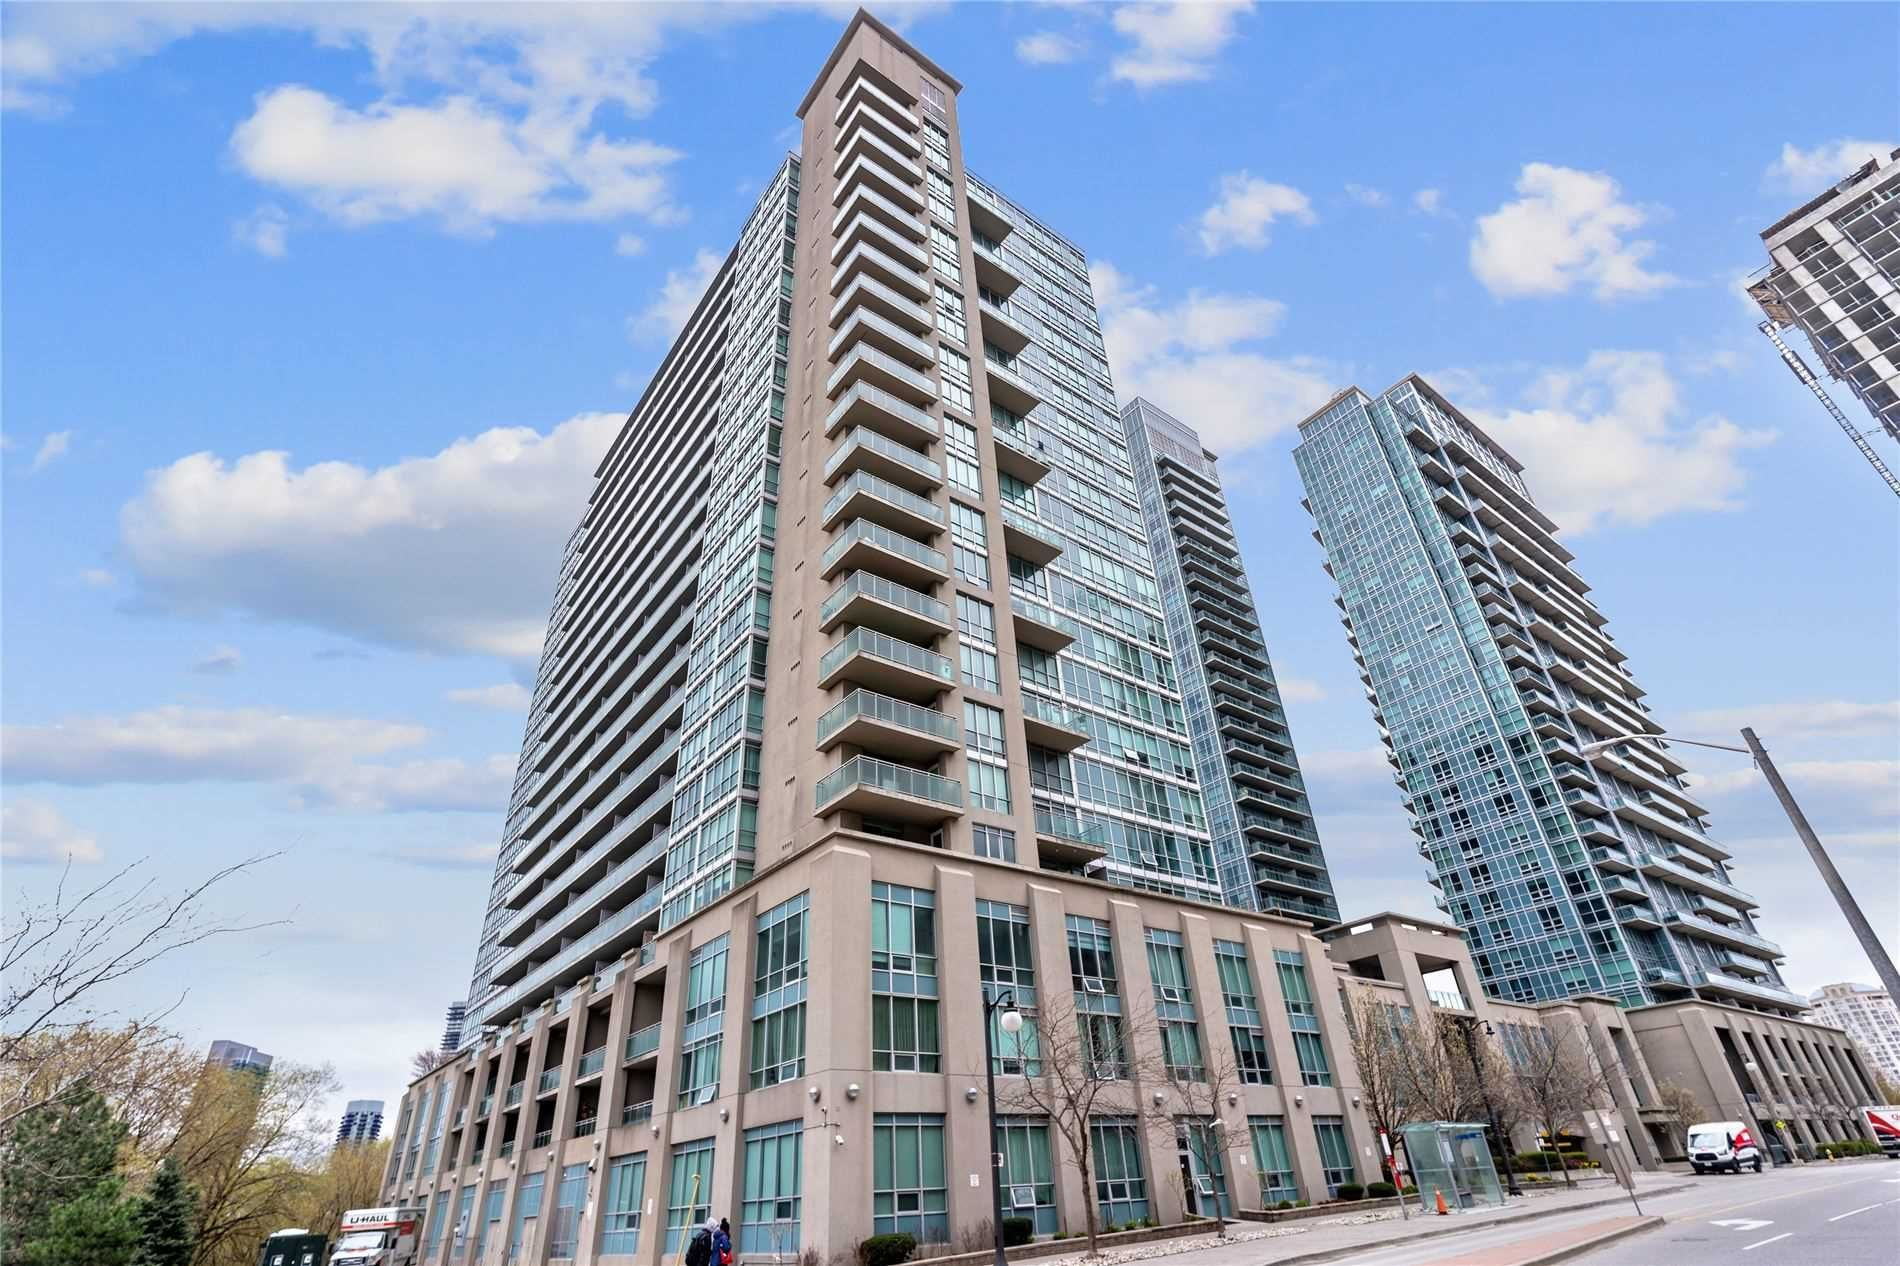 185 Legion Rd N, unit 903 for sale in Toronto - image #1